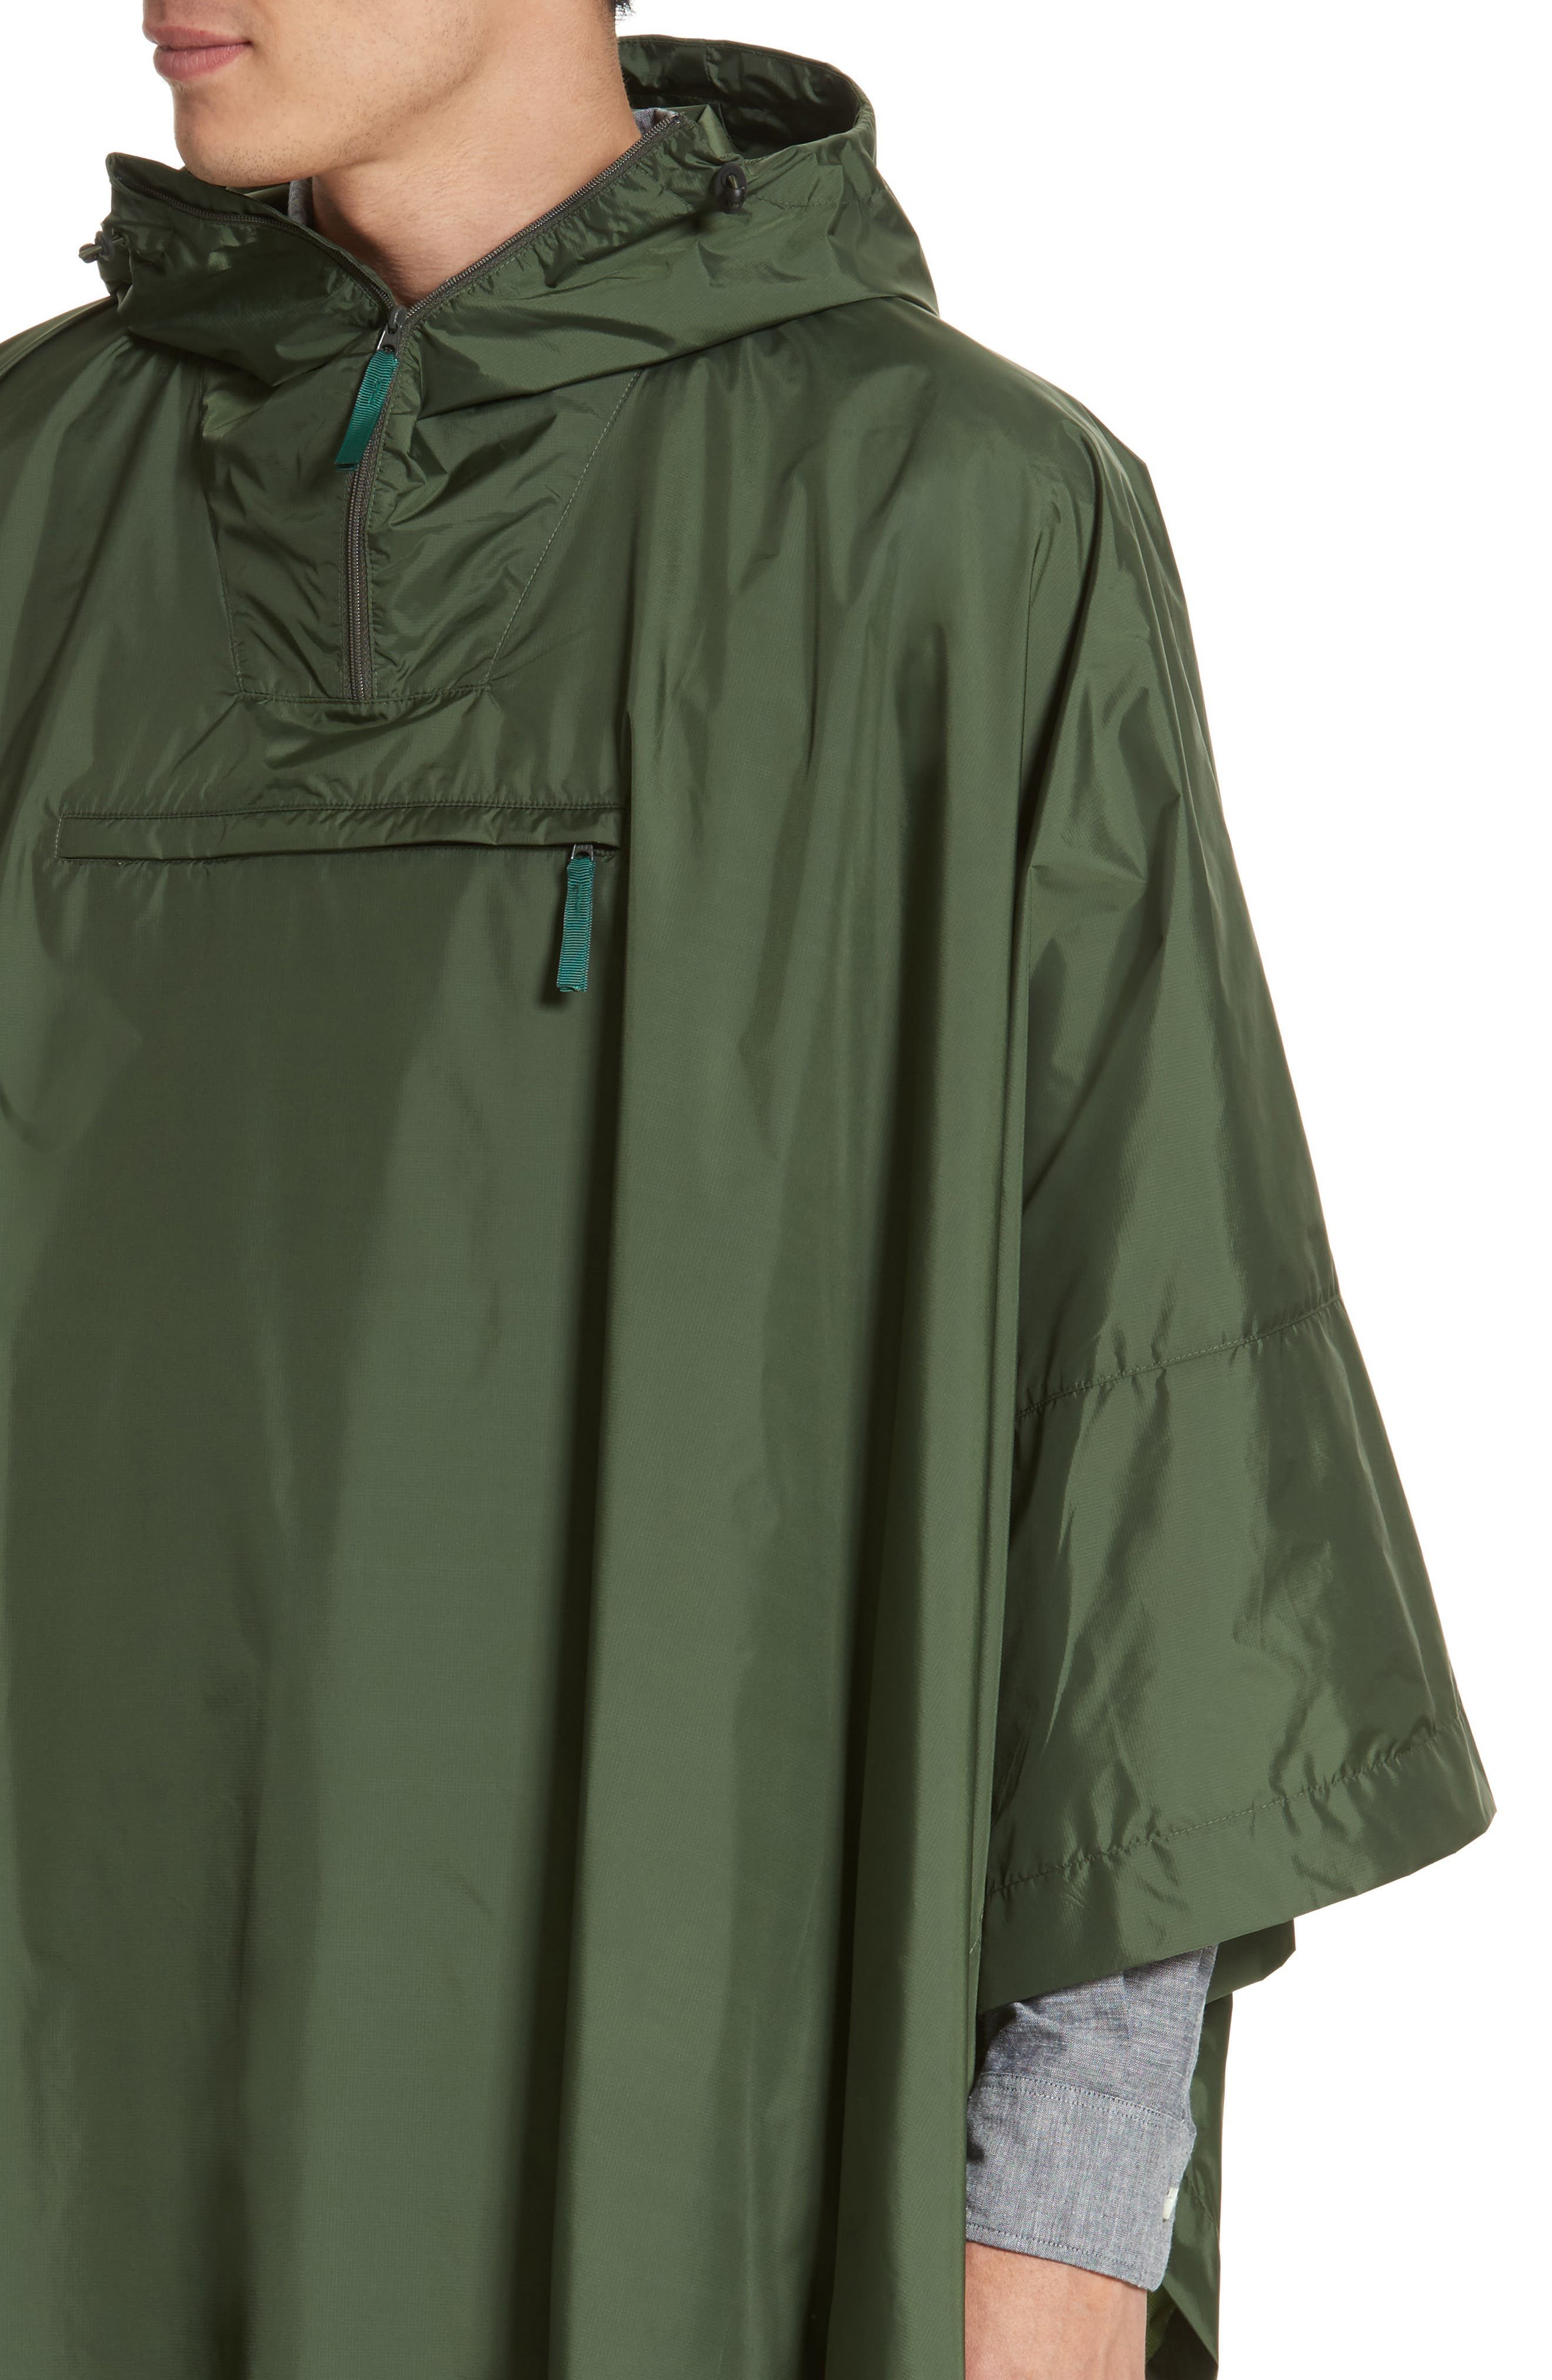 Packable Nylon Poncho,                             Alternate thumbnail 4, color,                             301